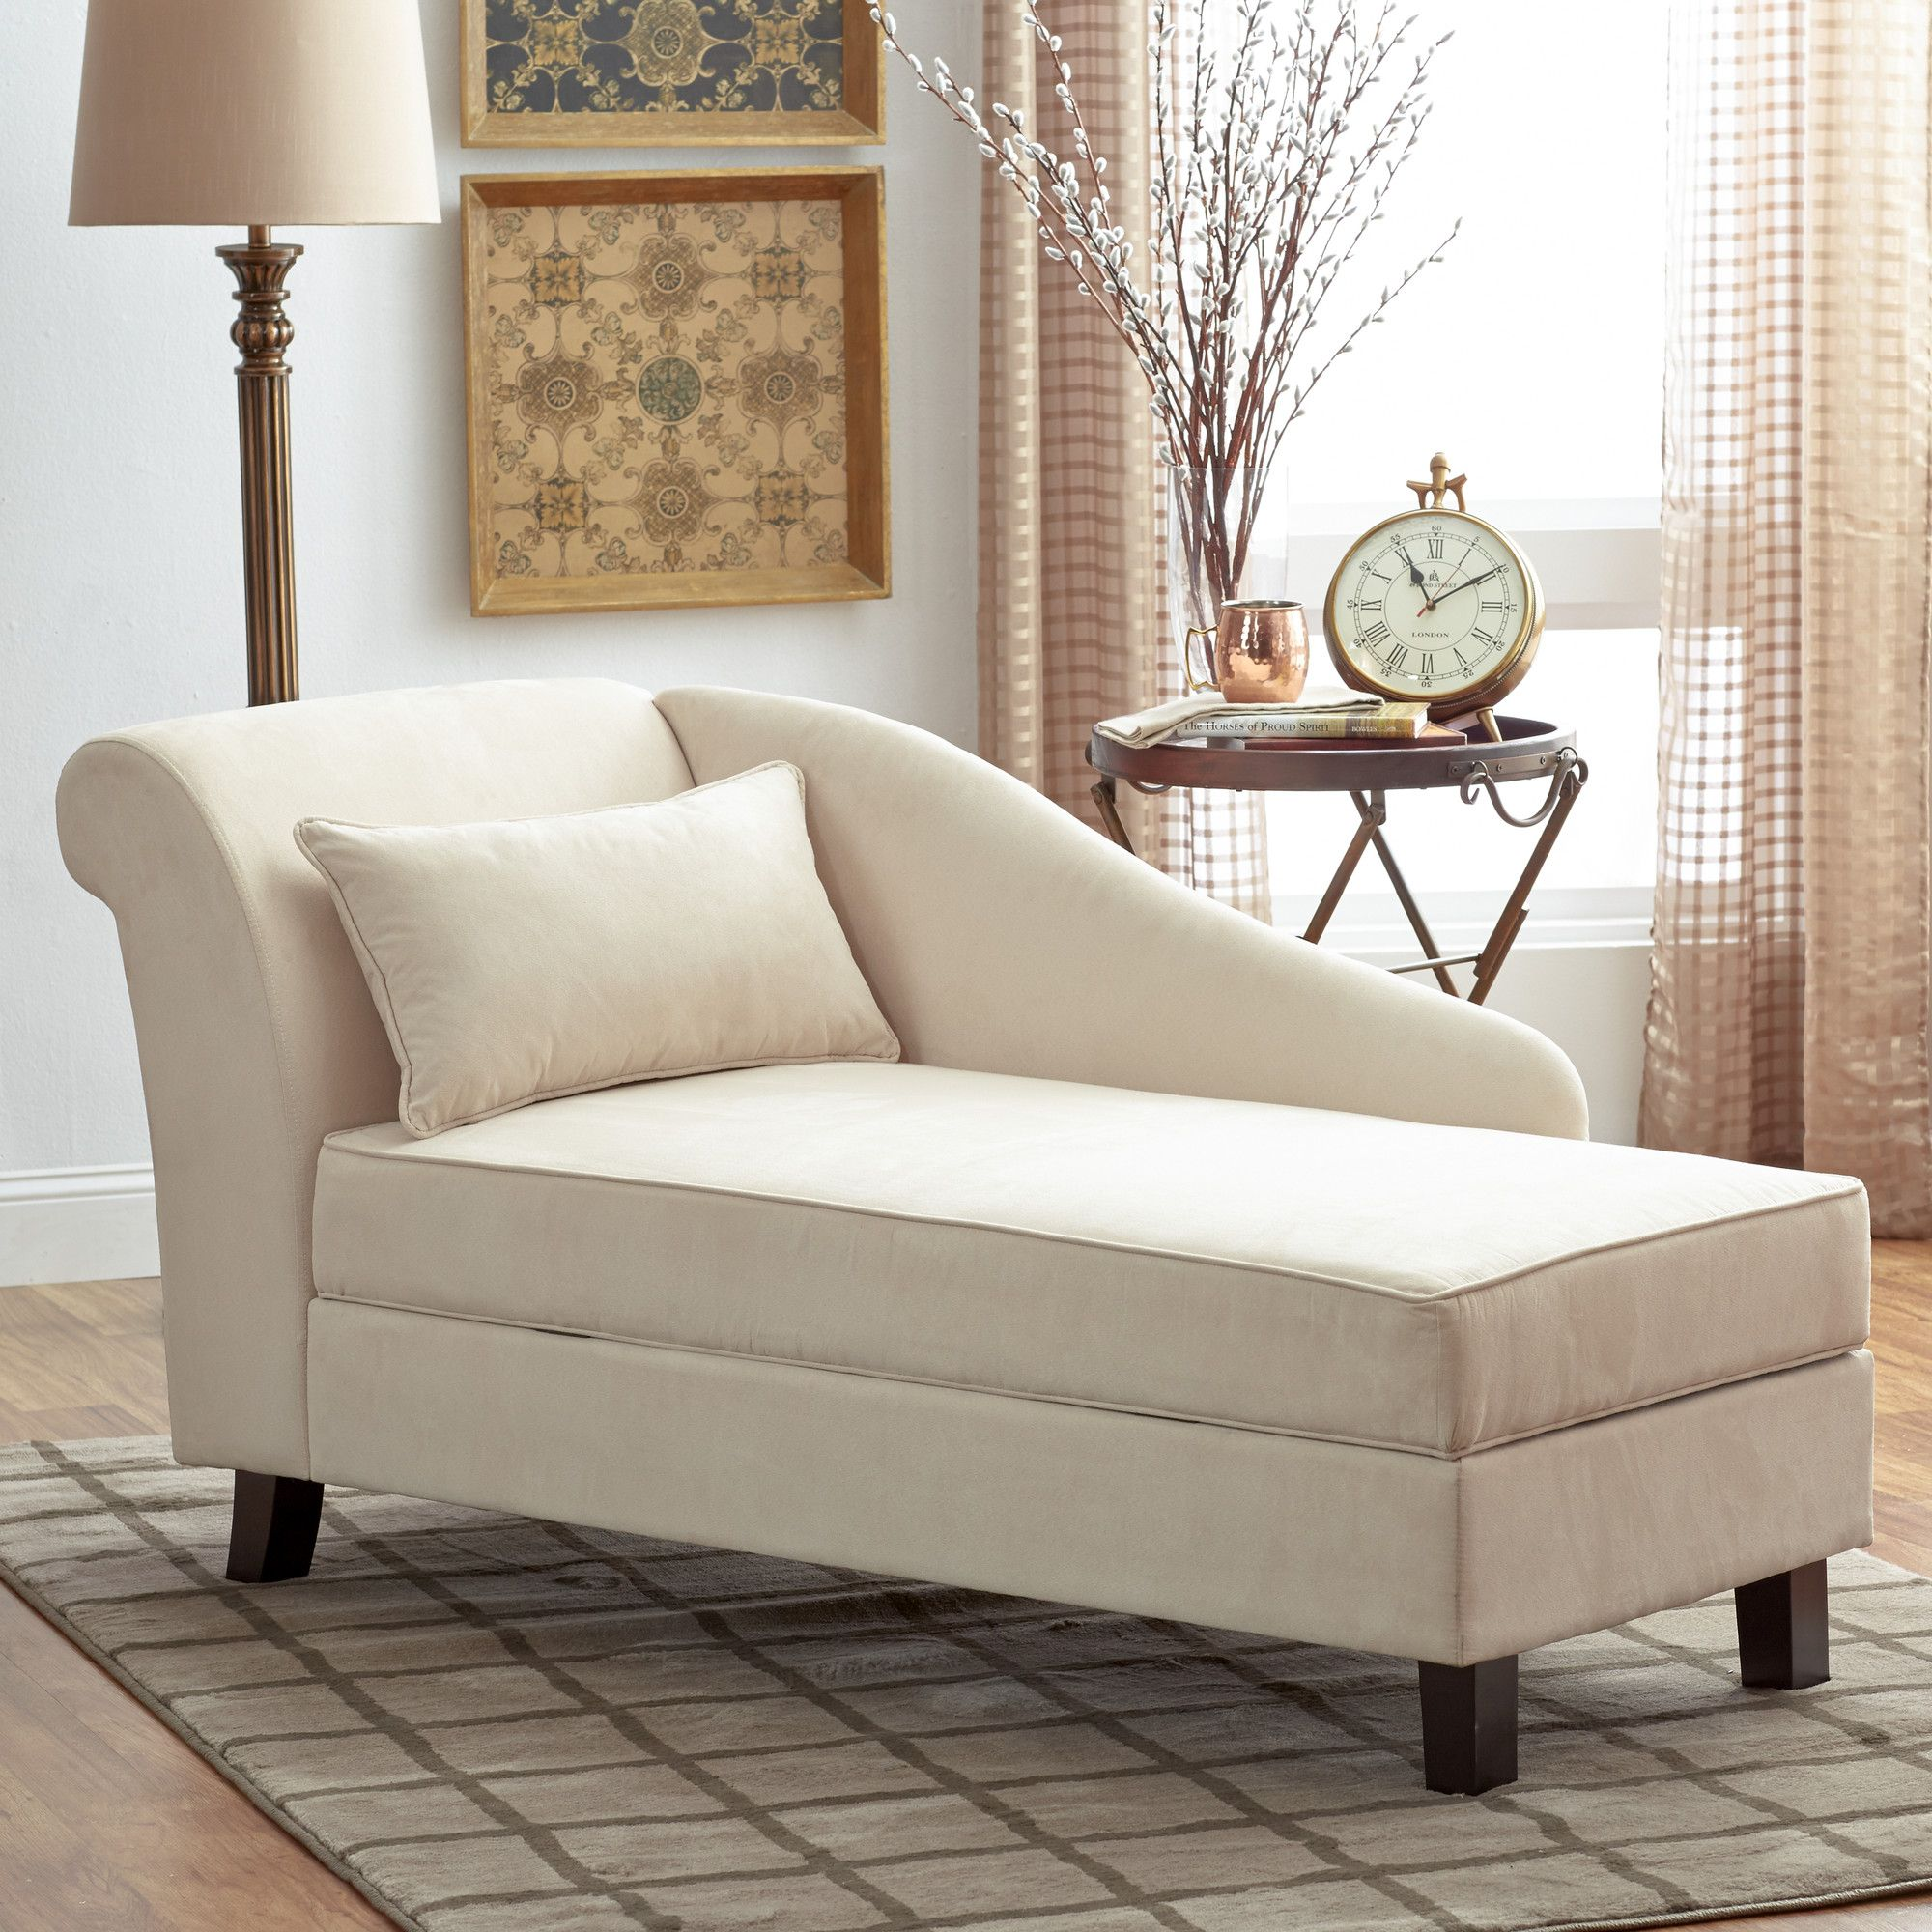 Youu0027ll Love The Verona Storage Chaise Lounge At Birch Lane   With Great  Deals